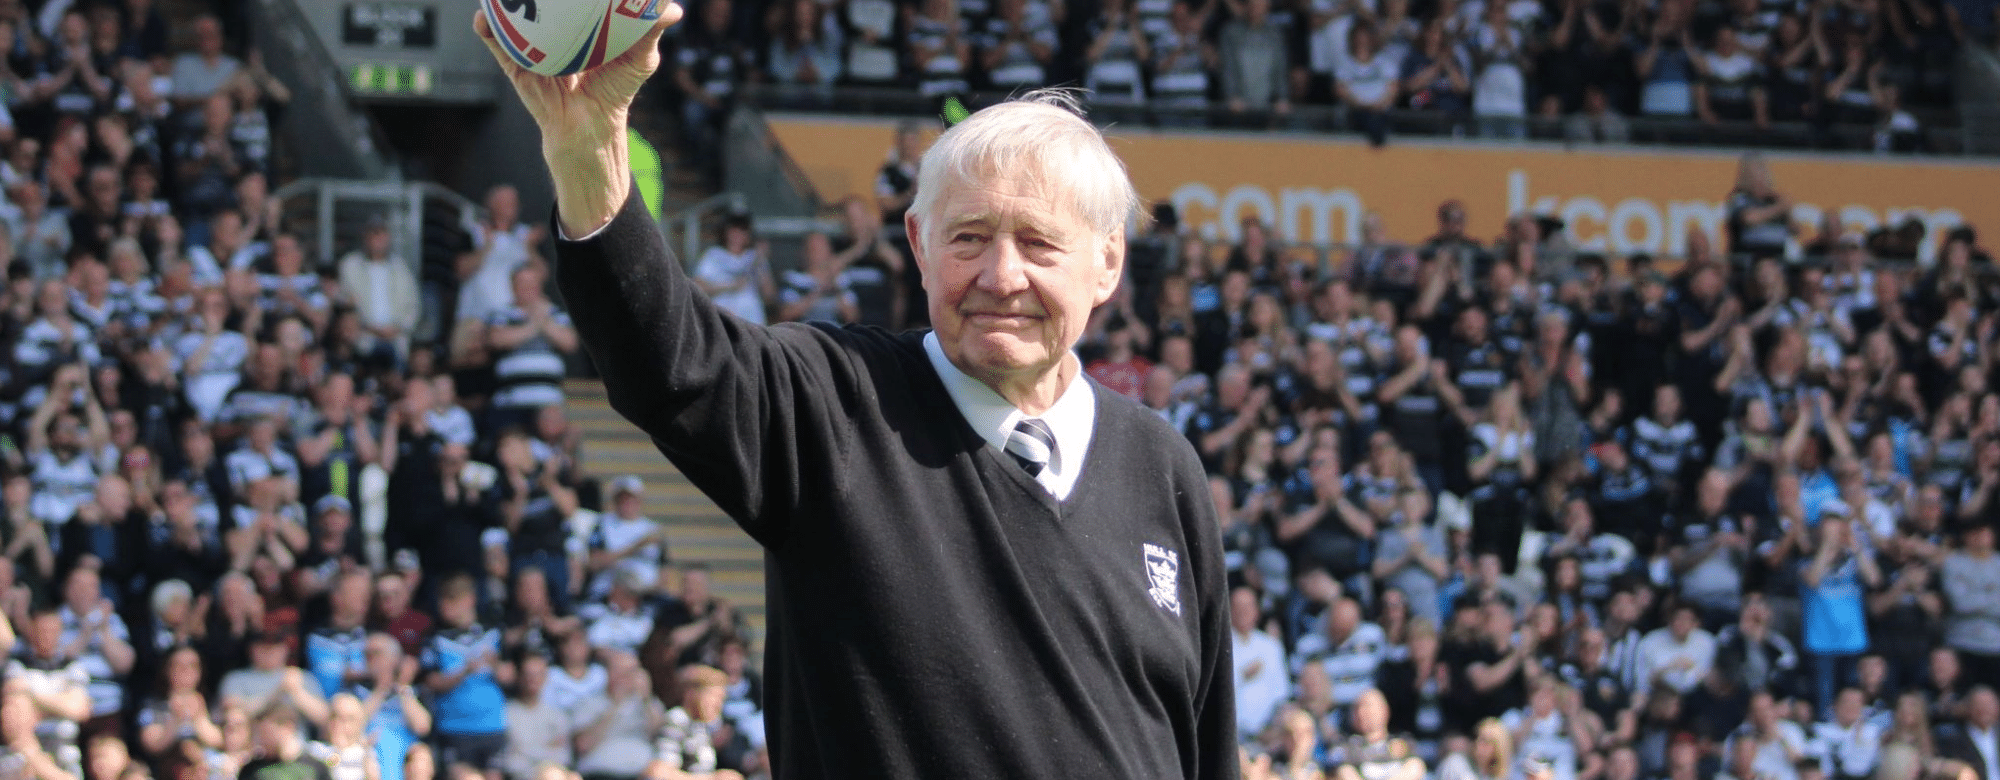 The Remarkable Playing & Coaching Career of Johnny Whiteley MBE